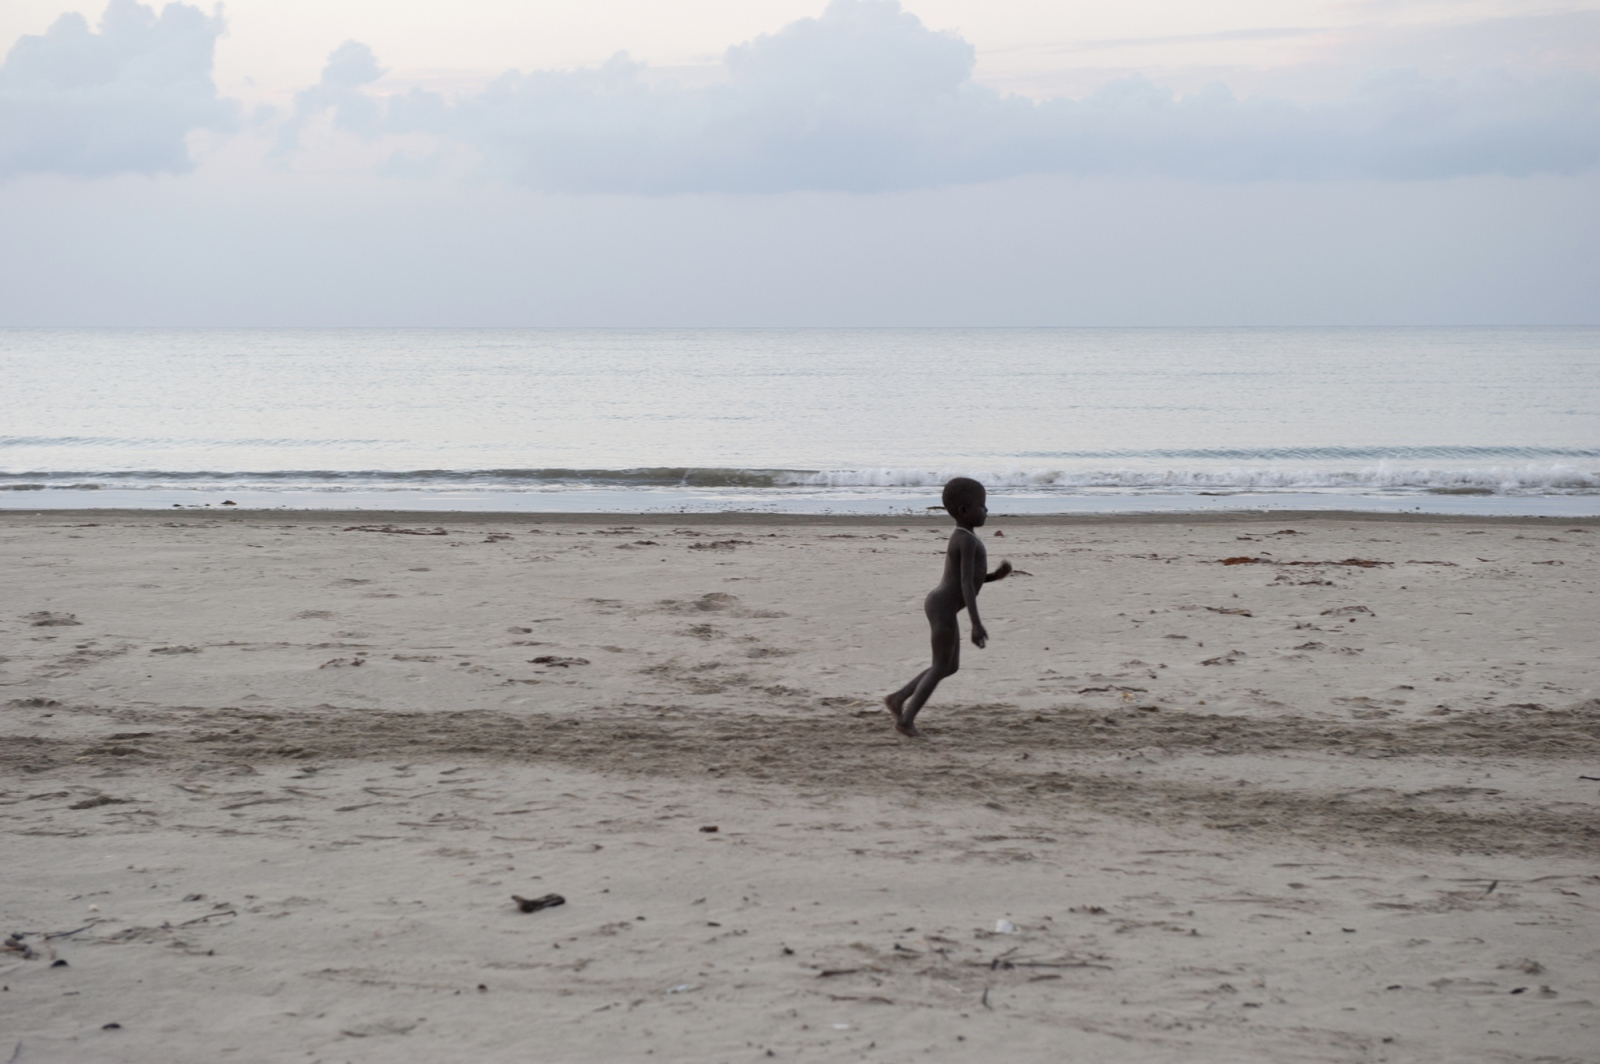 Art and Documentary Photography - Loading jarawa__beilvert_girl_on_the_beach.jpg